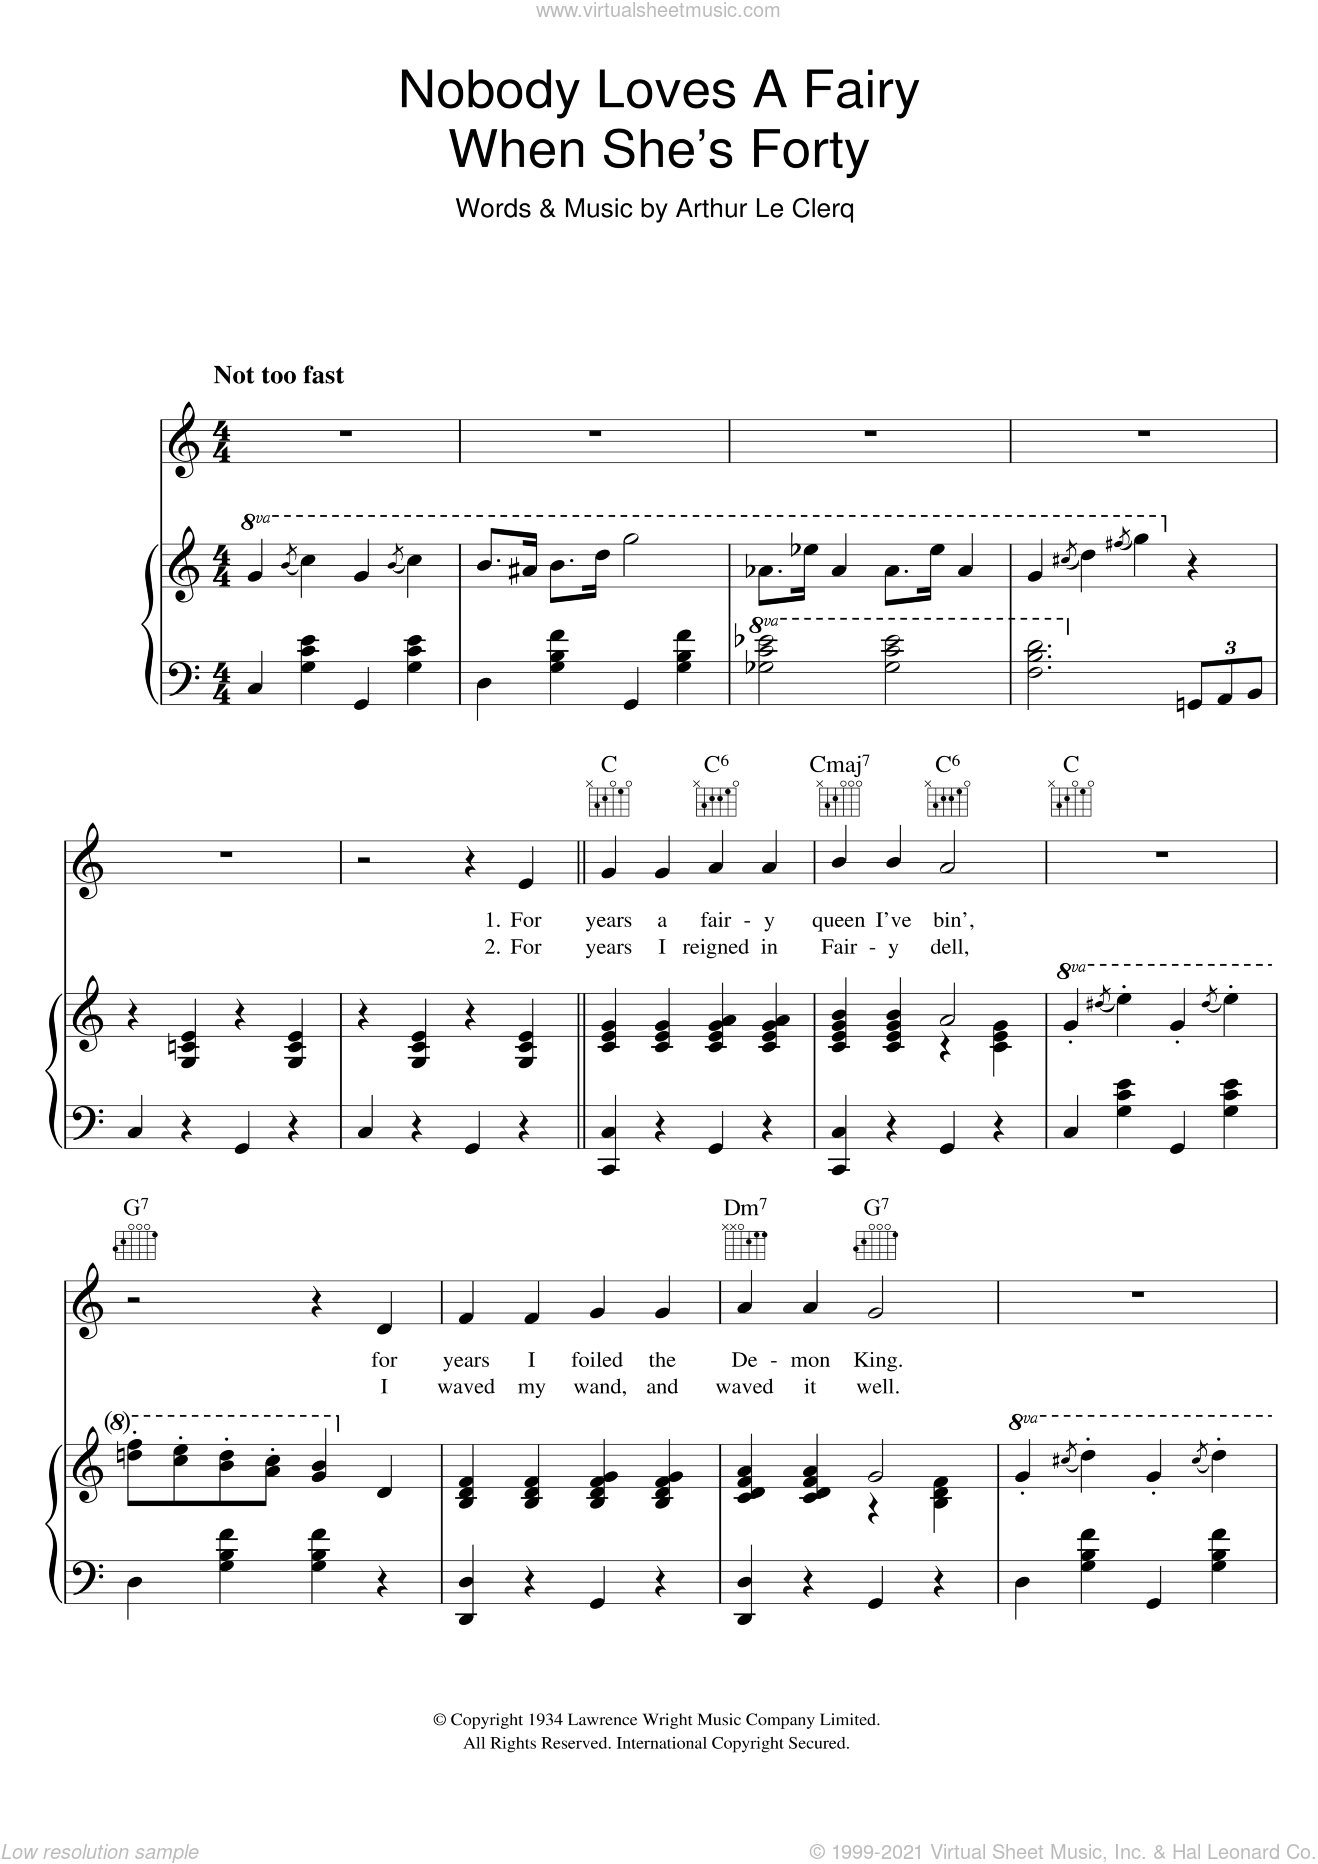 Nobody Loves A Fairy When She's Forty sheet music for voice, piano or guitar by Billy Cotton and Arthur Le Clerq, intermediate